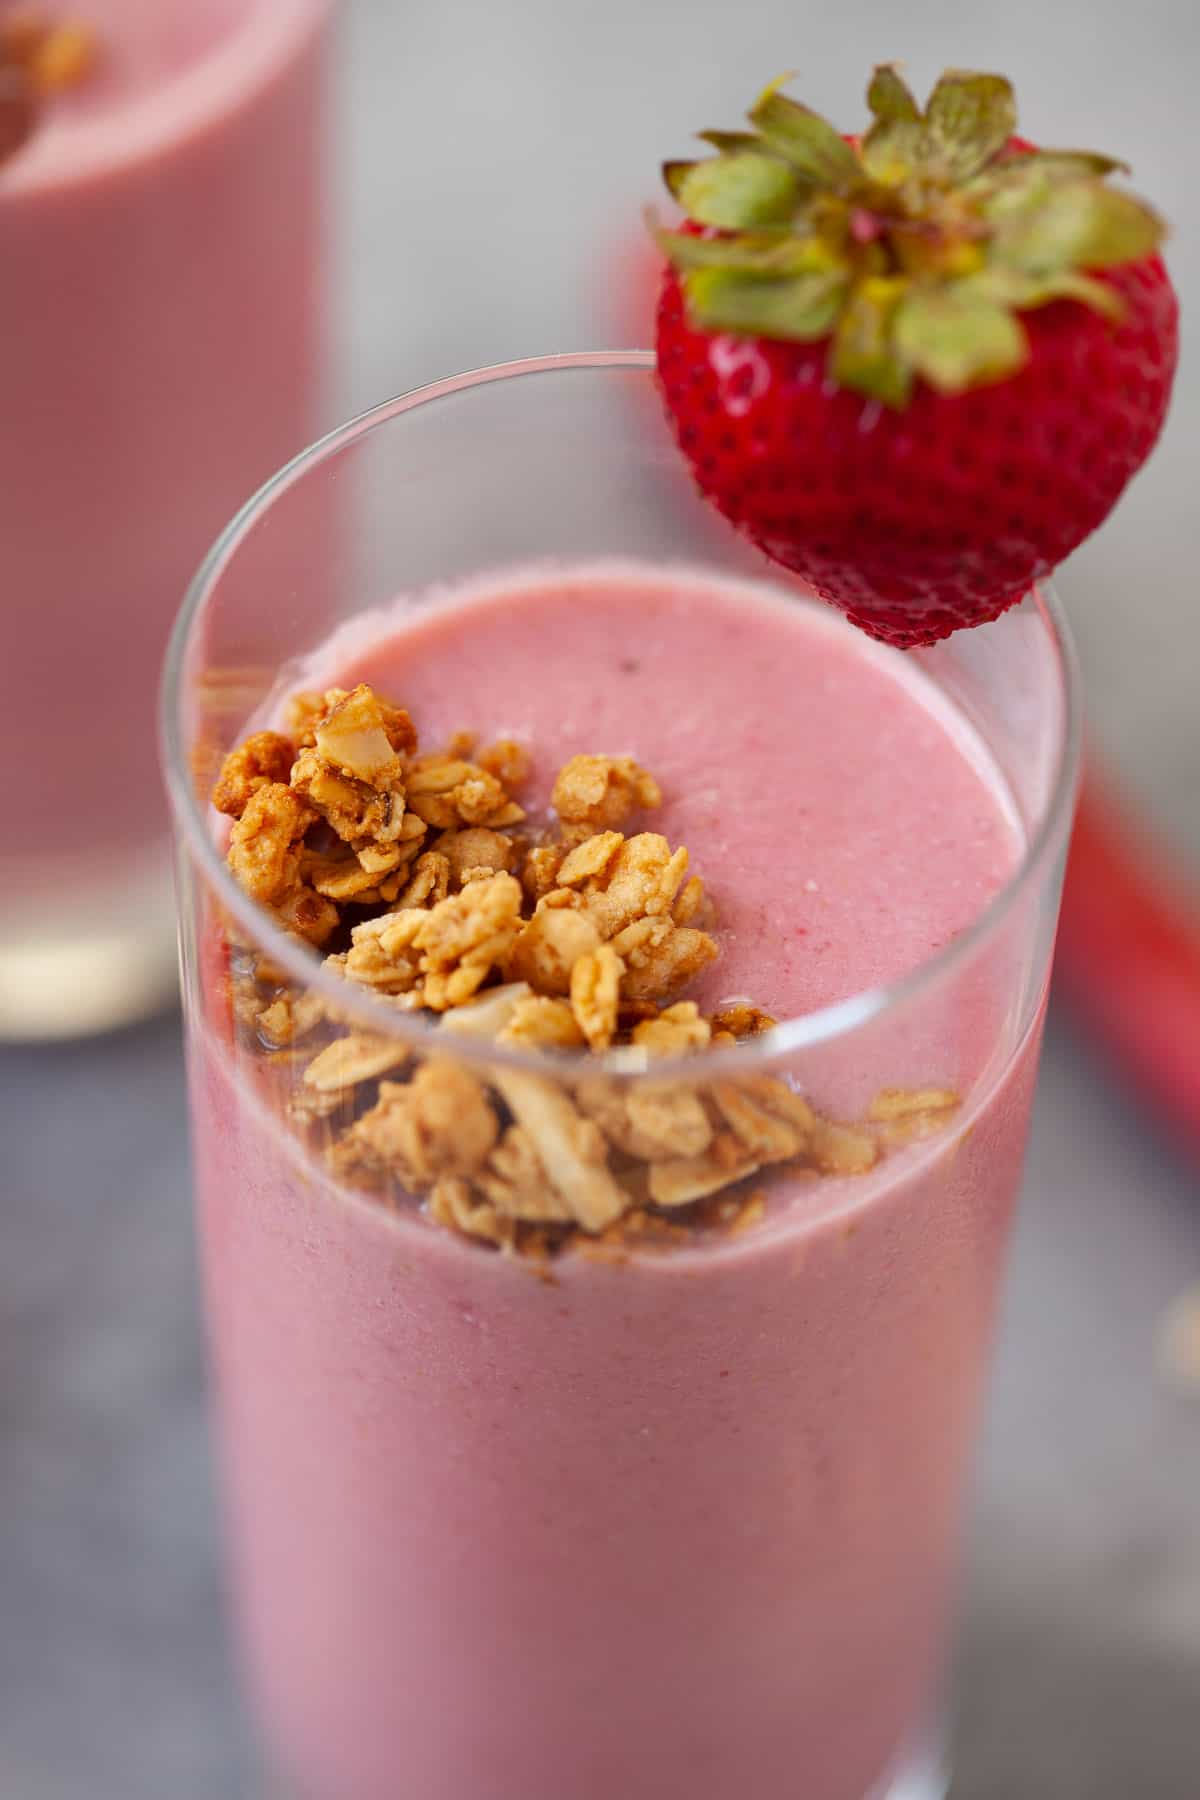 glass filled with strawberry rhubarb smoothie with nutty granola and fresh strawberry for garnish